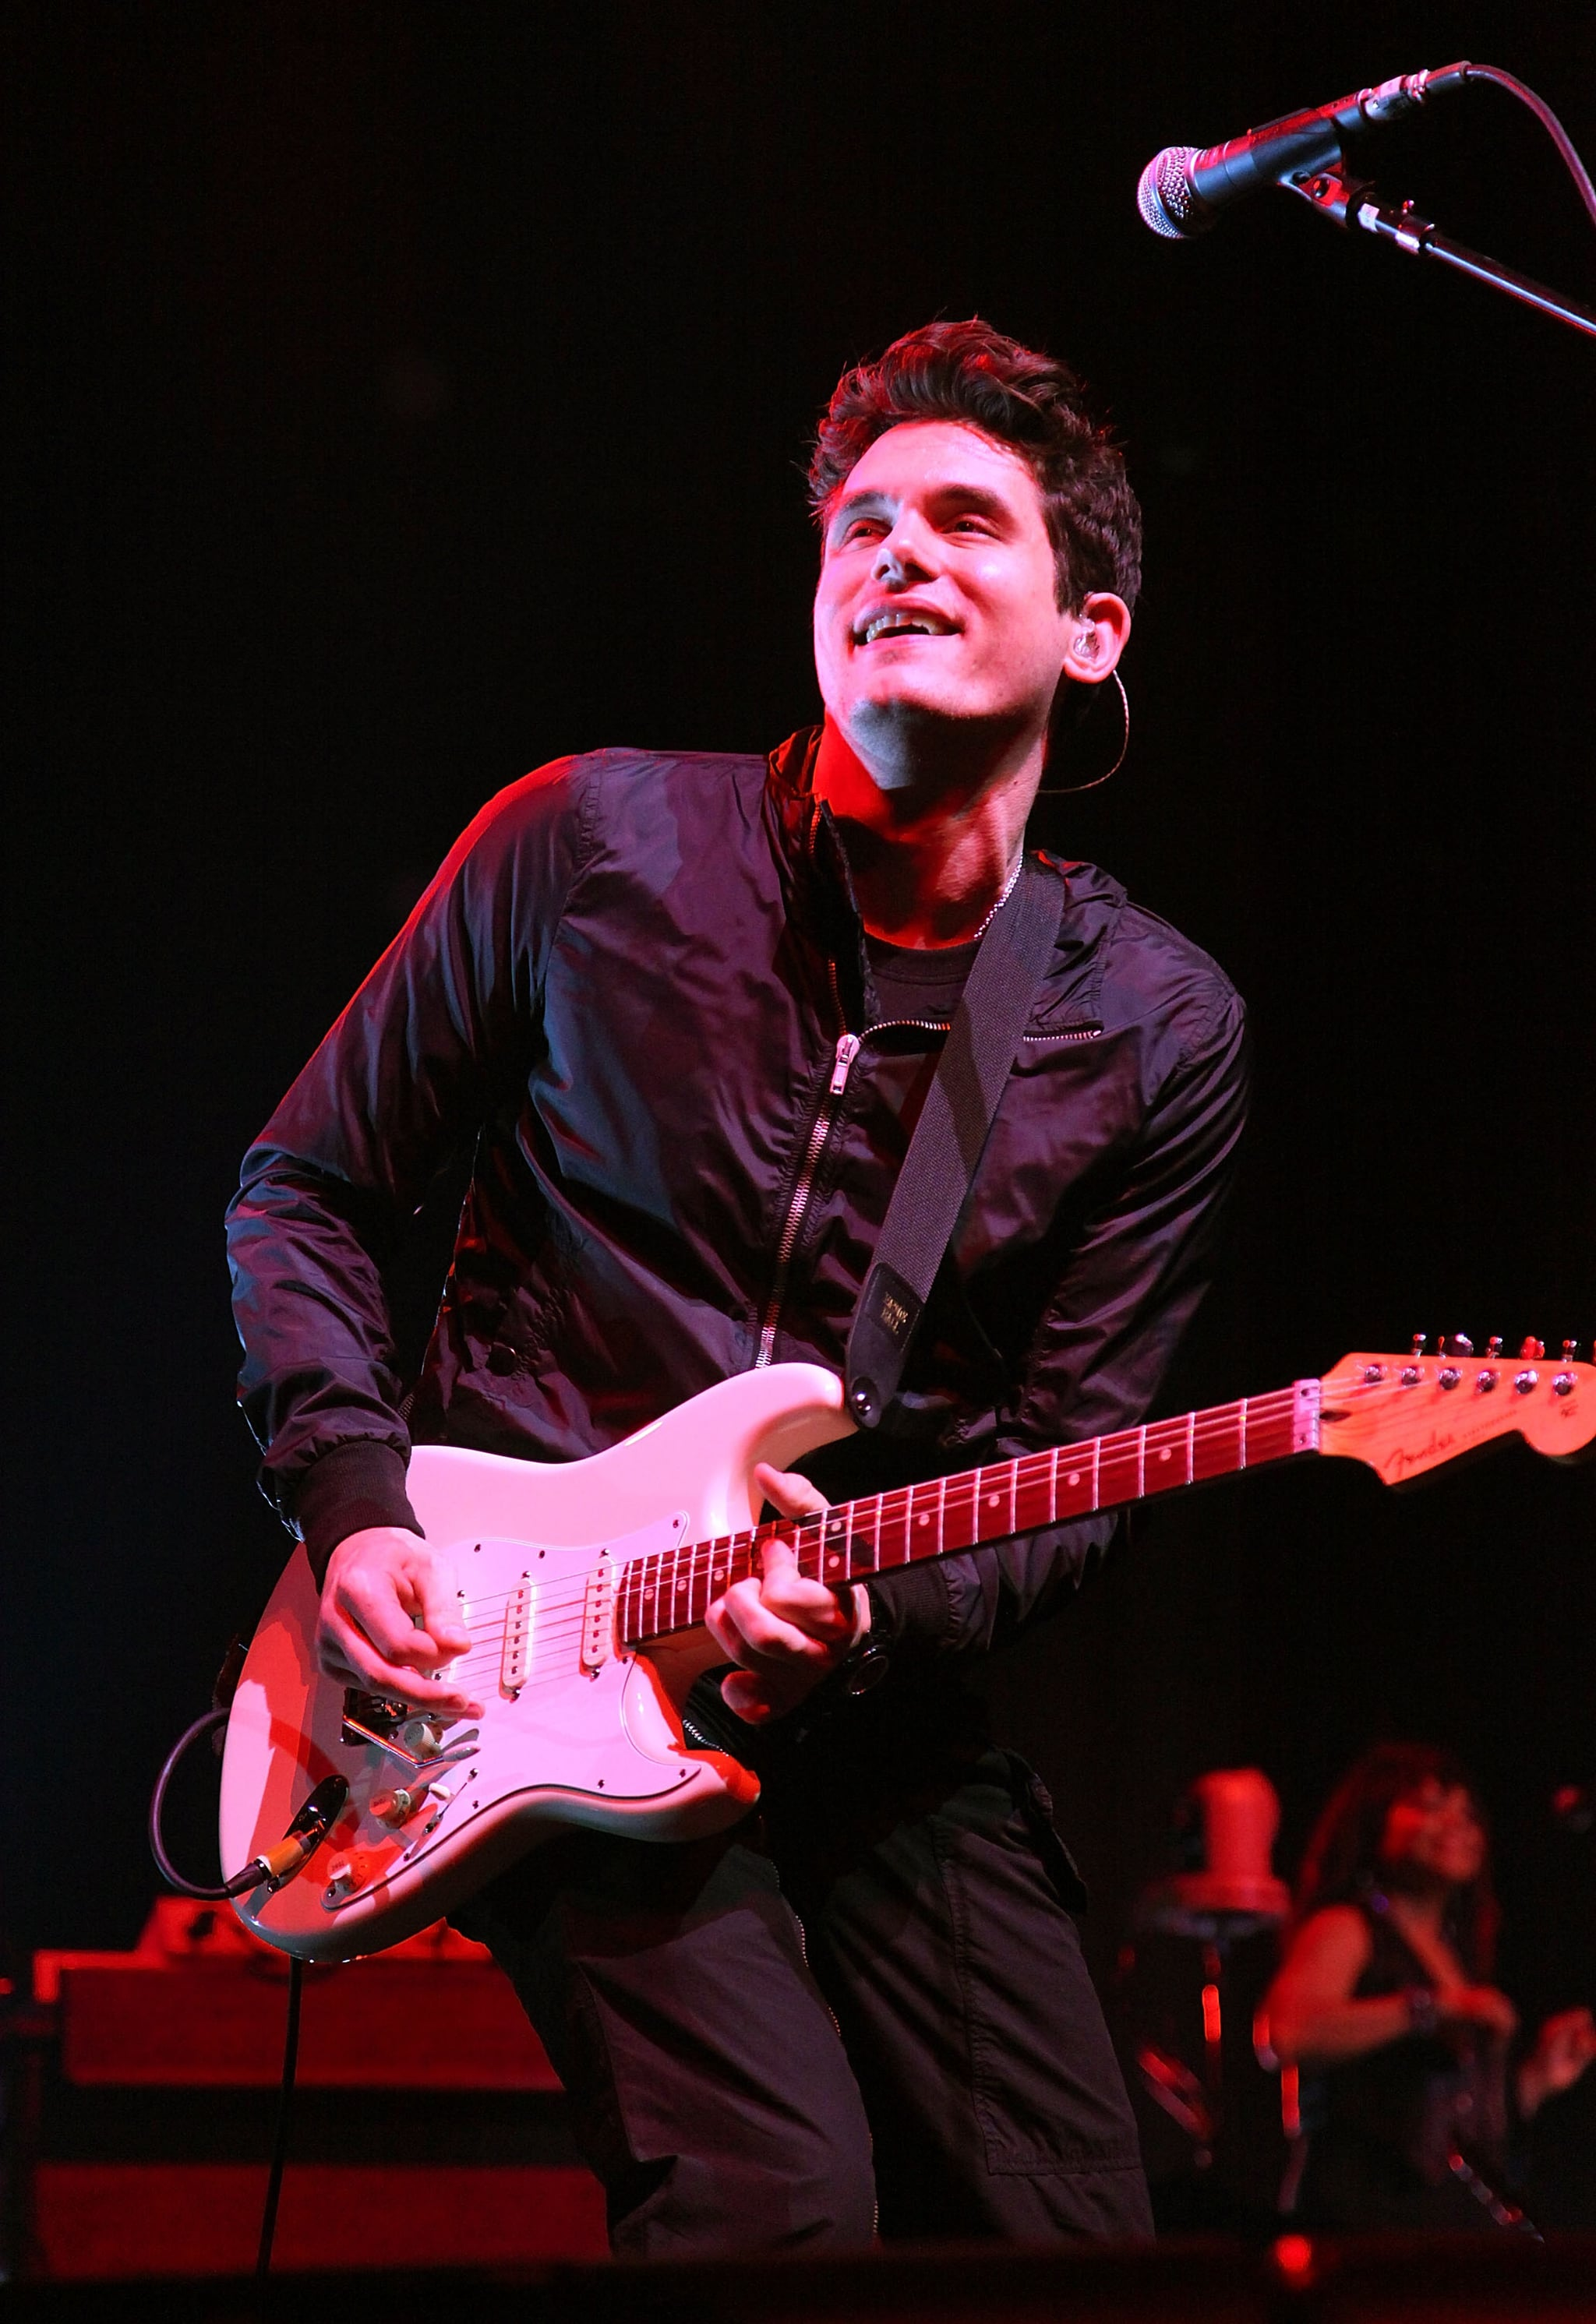 Photos Of John Mayer On Stage At Madison Square Garden In